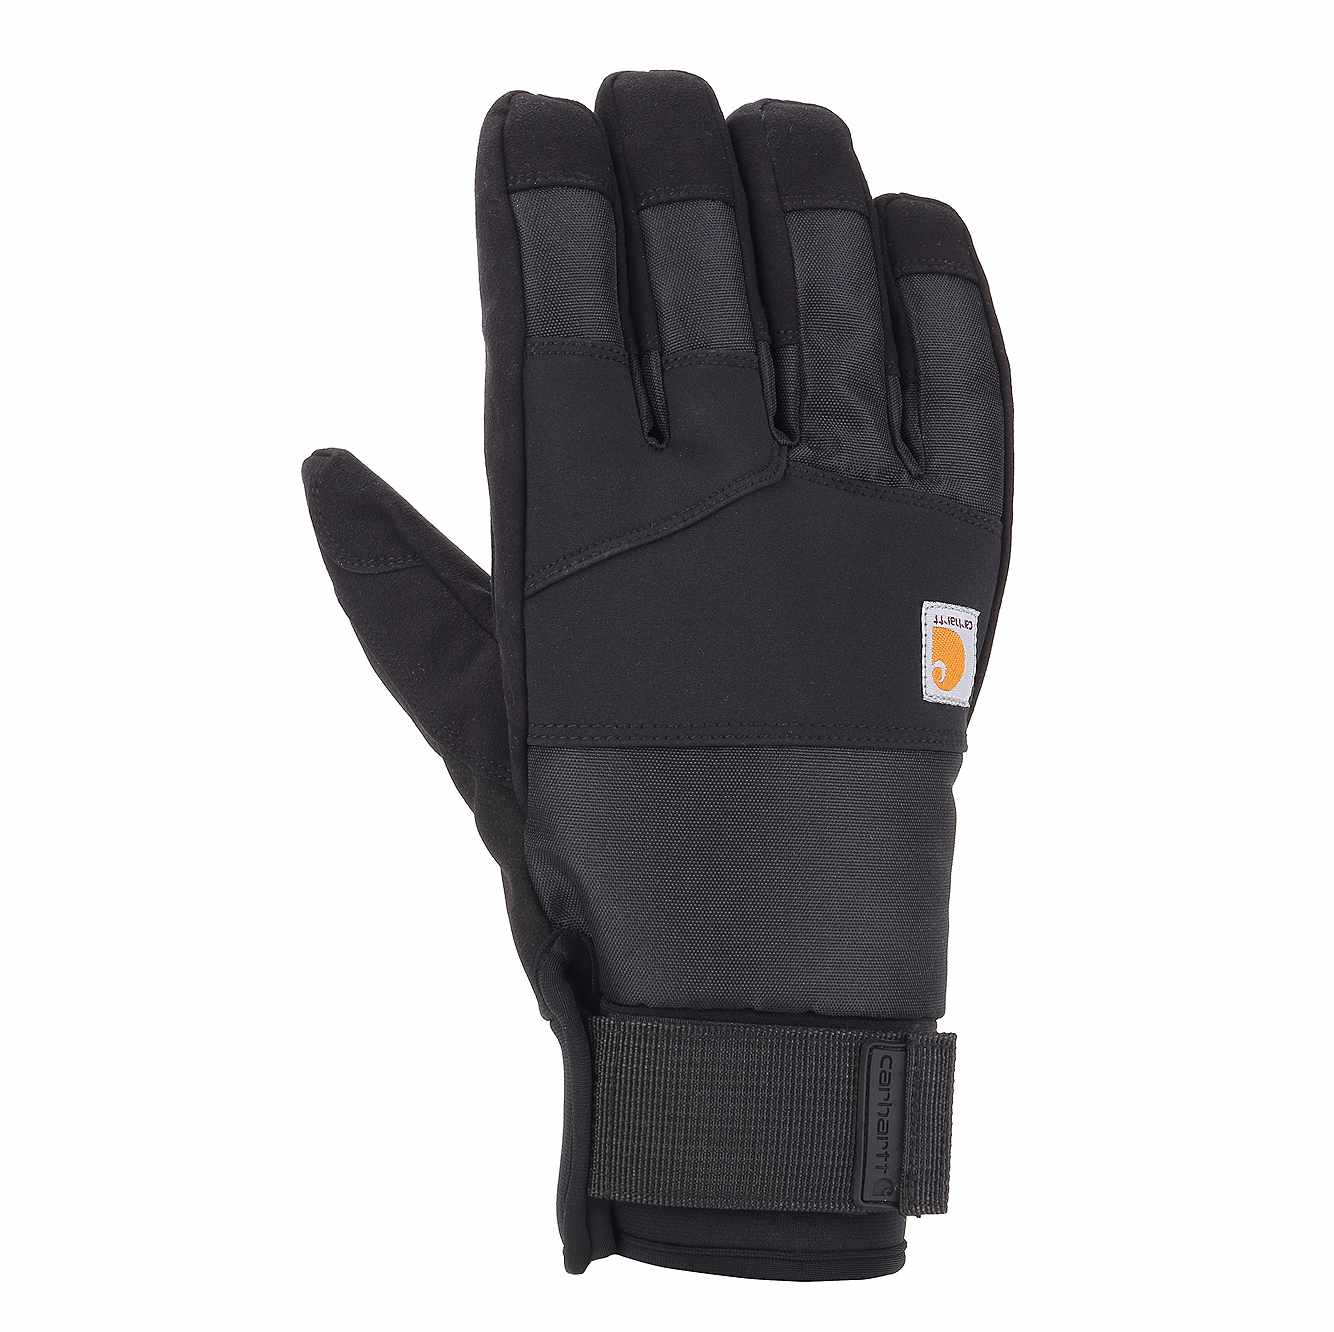 Picture of Stoker Insulated Glove in Black